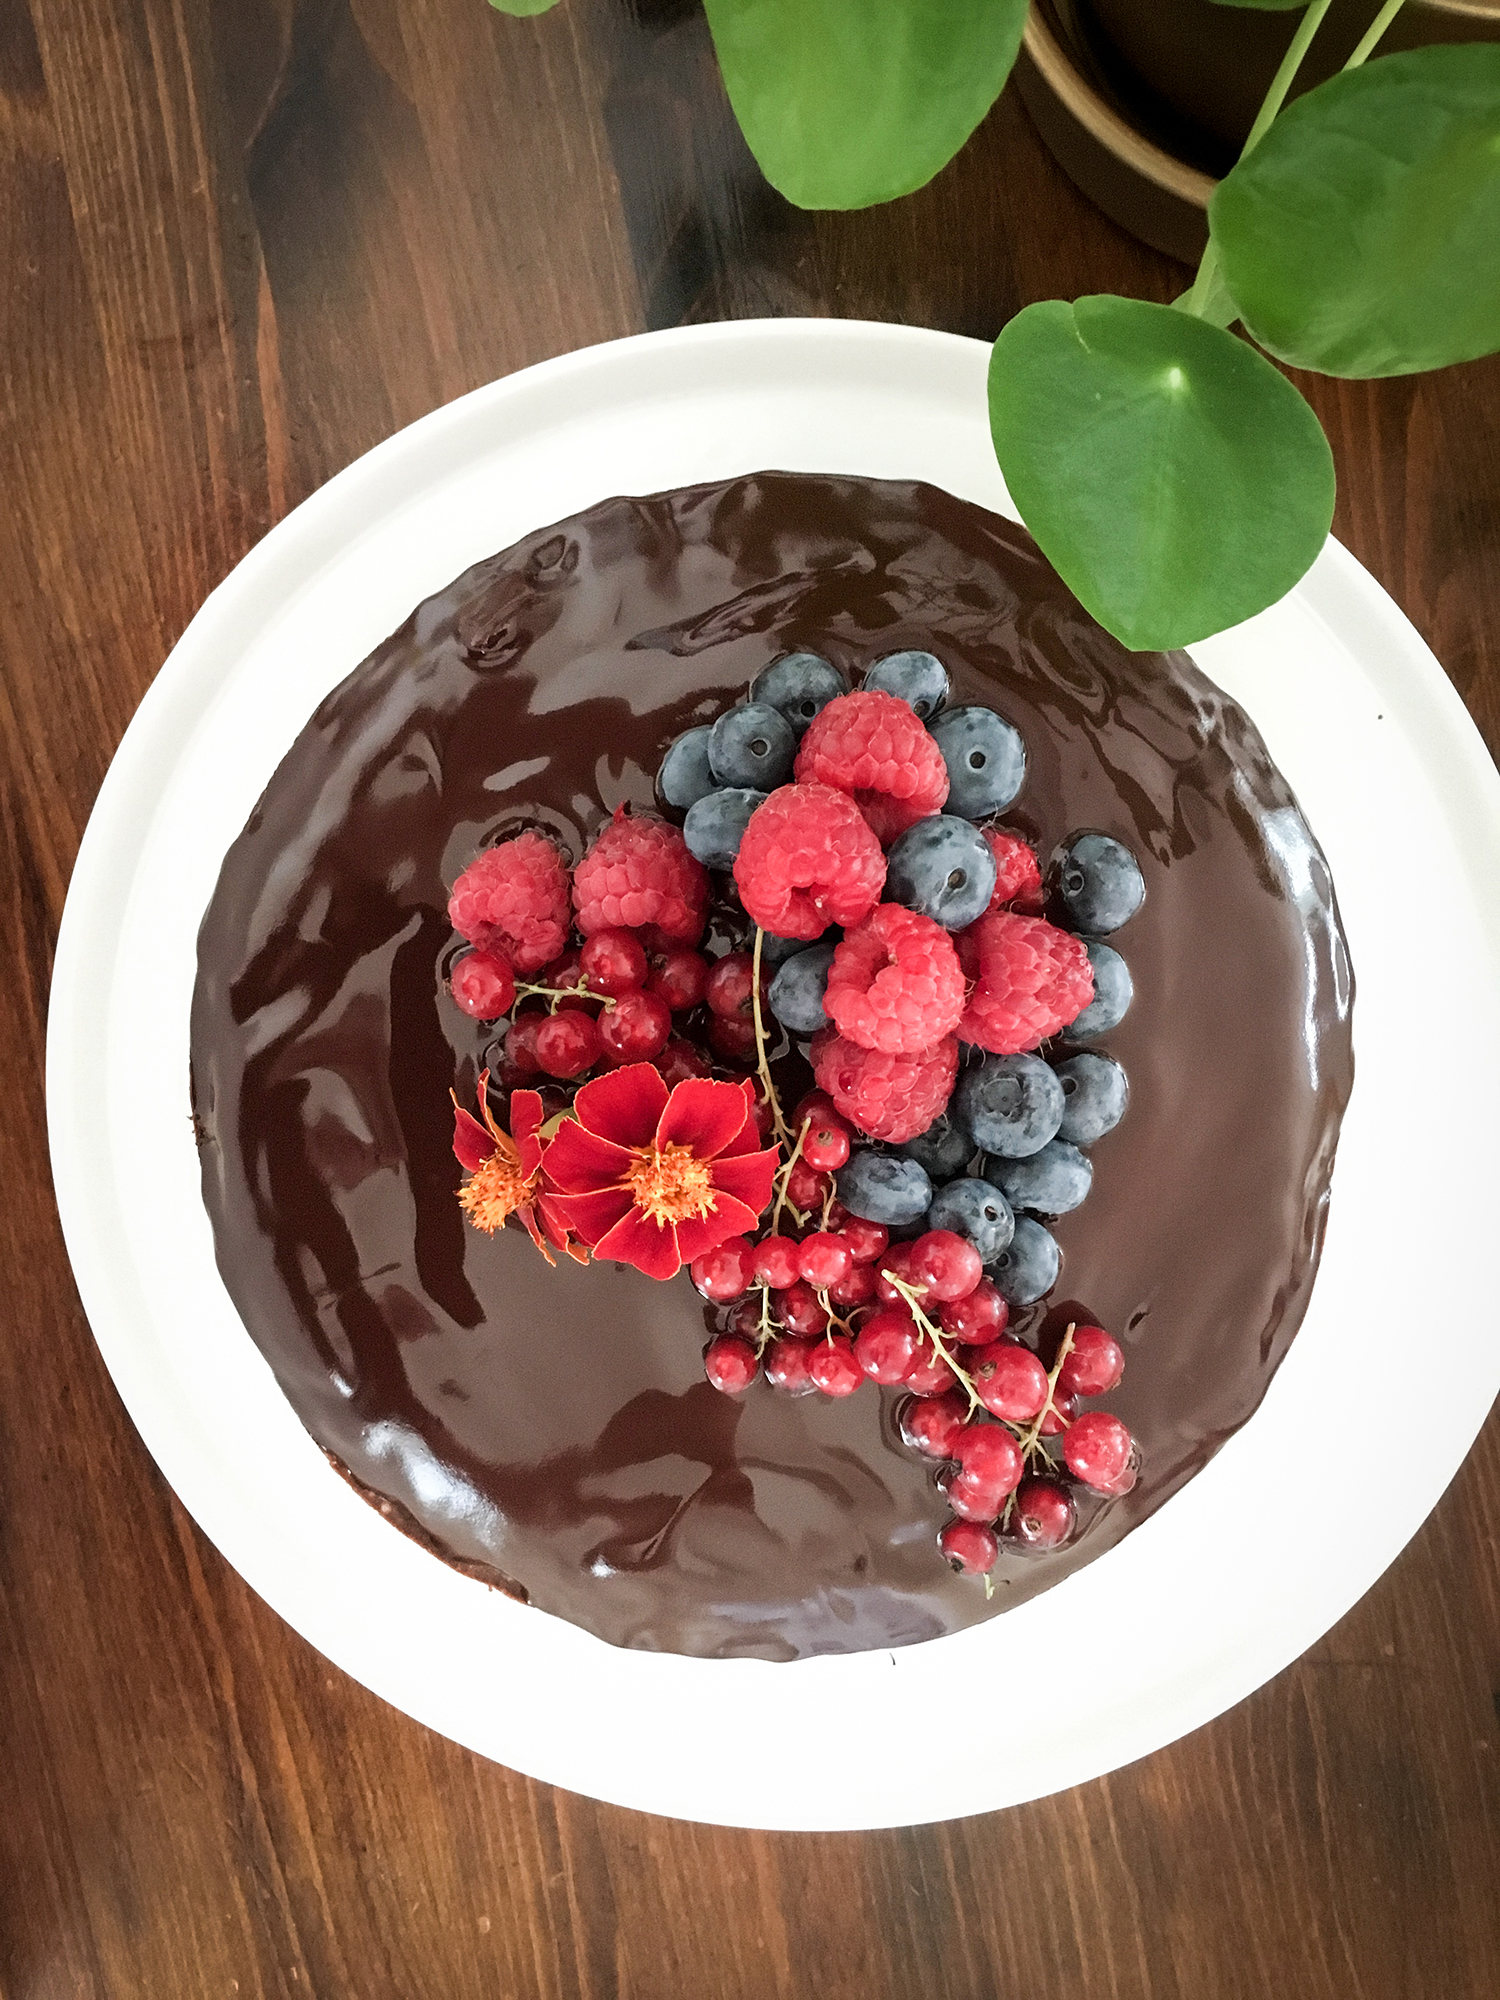 french chocolate cake in the table